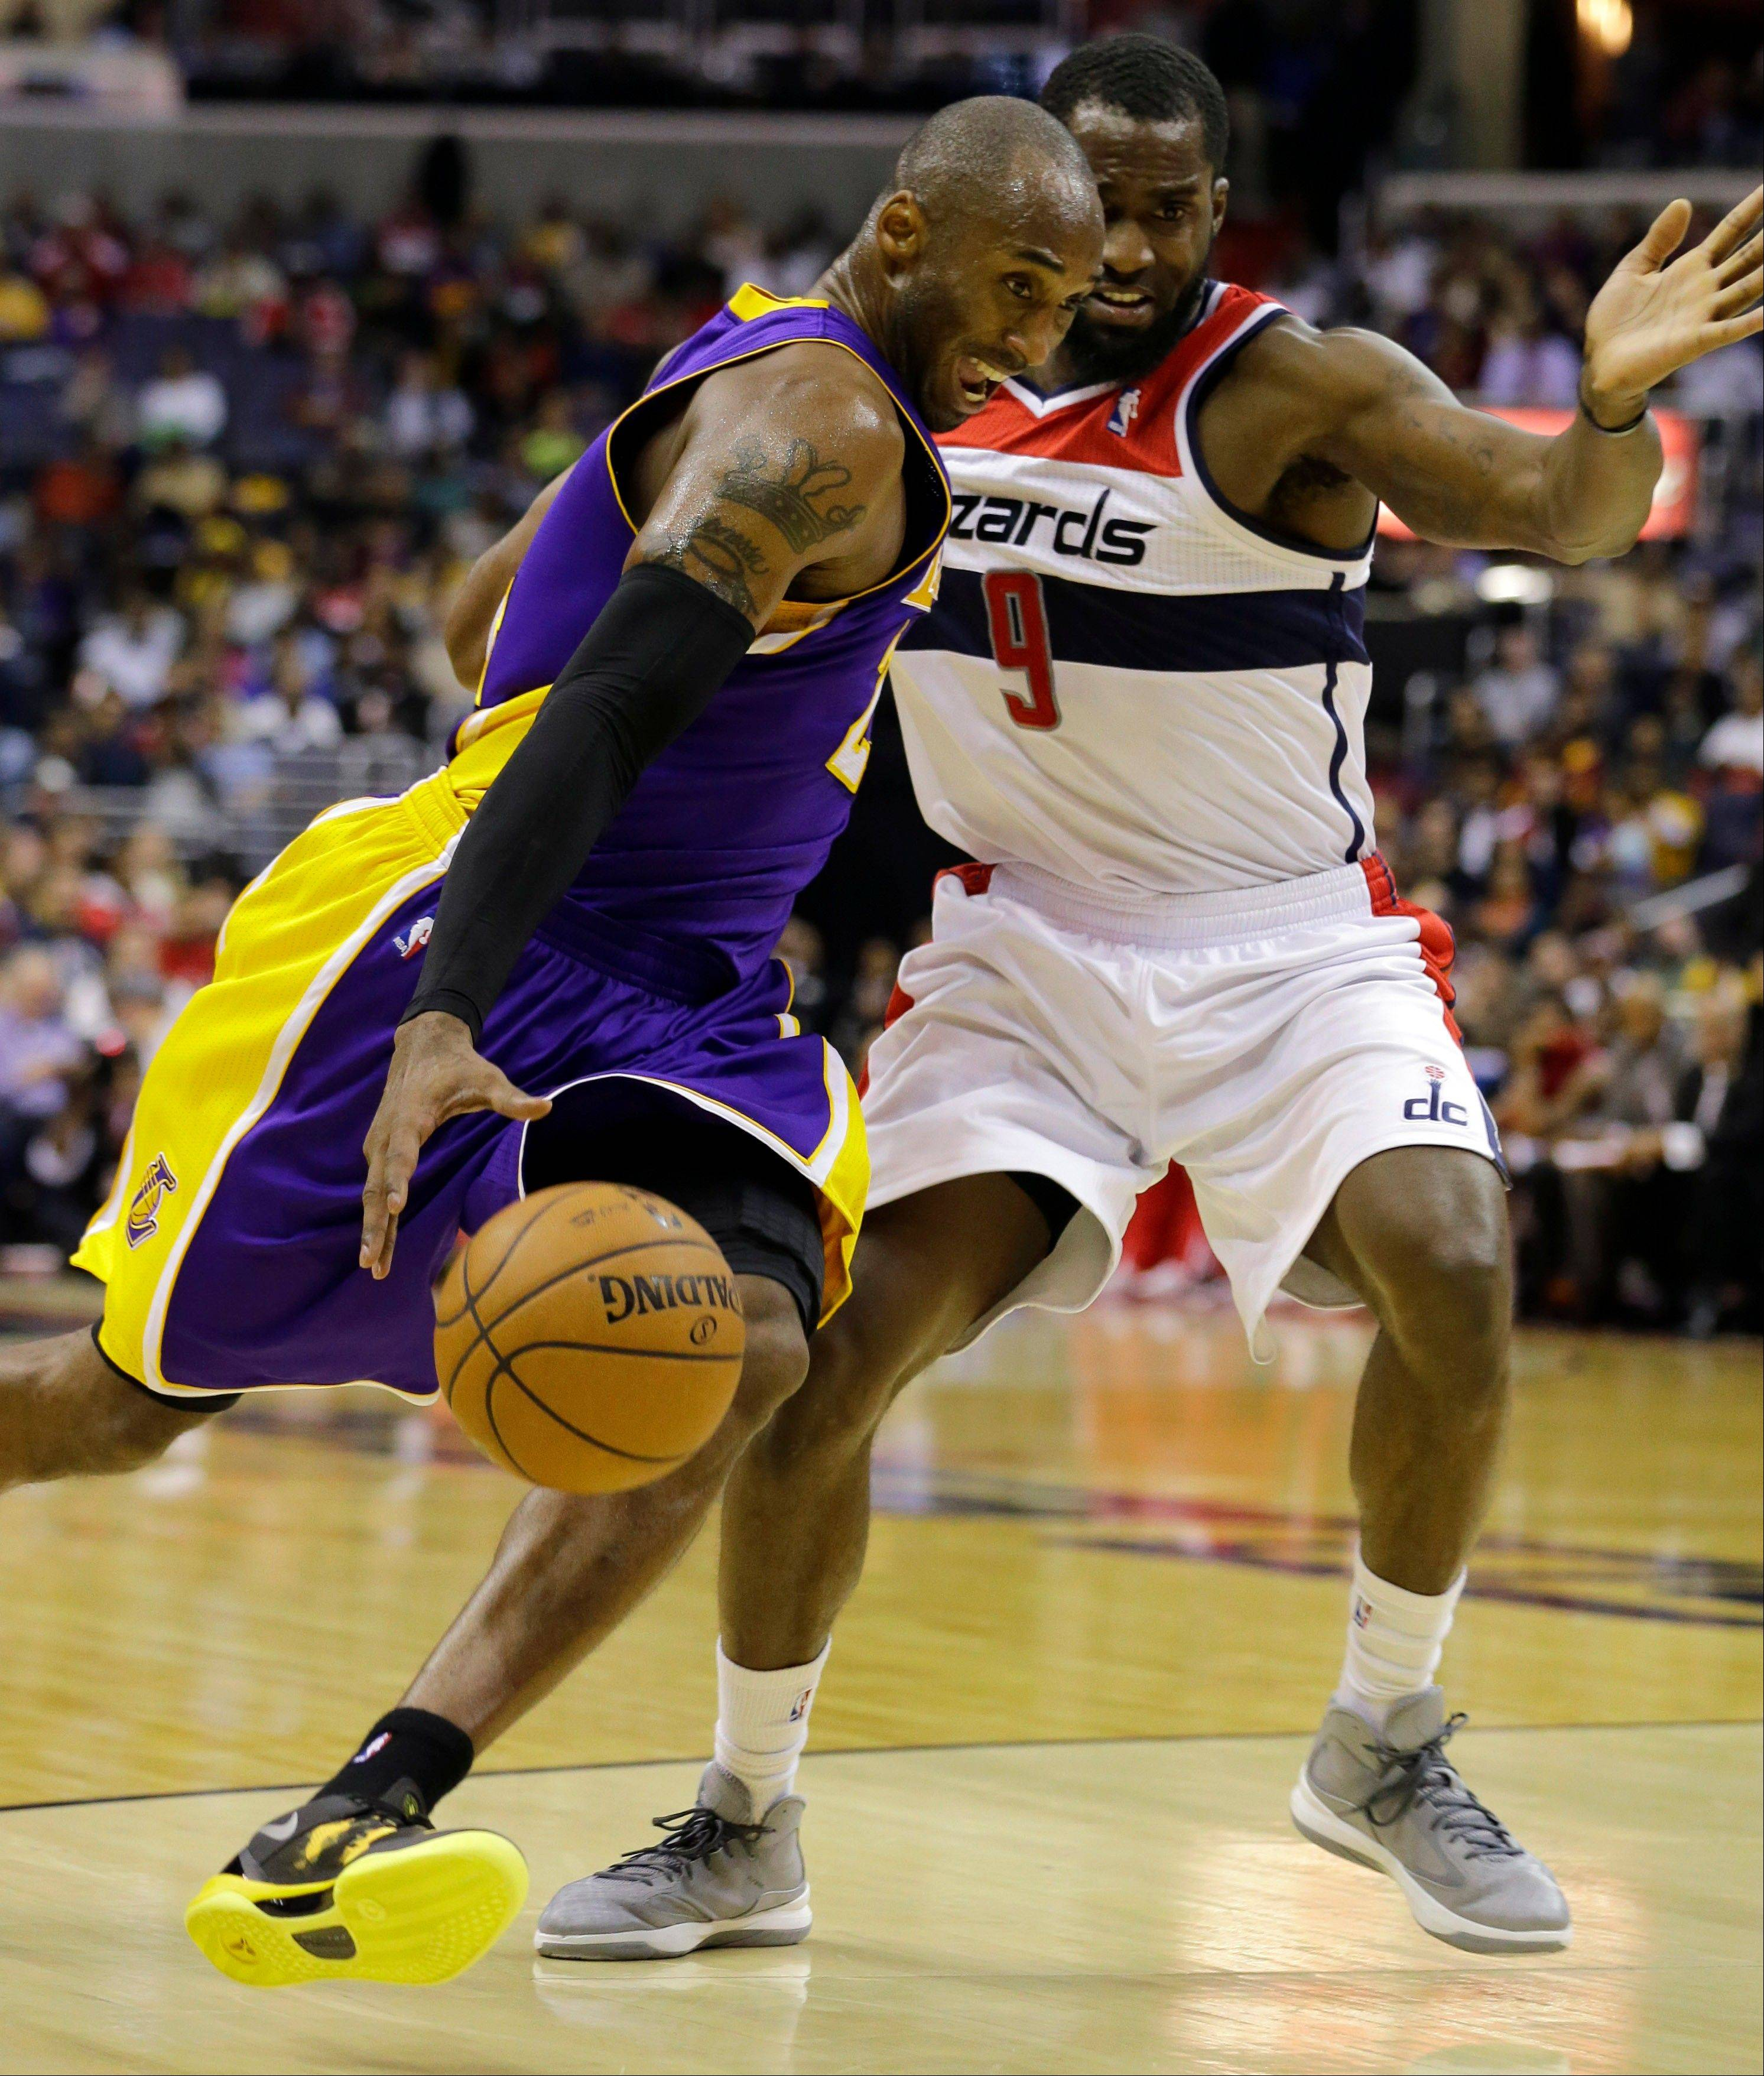 Los Angeles Lakers guard Kobe Bryant drives against Washington Wizards forward Martell Webster Friday during the first half in Washington.